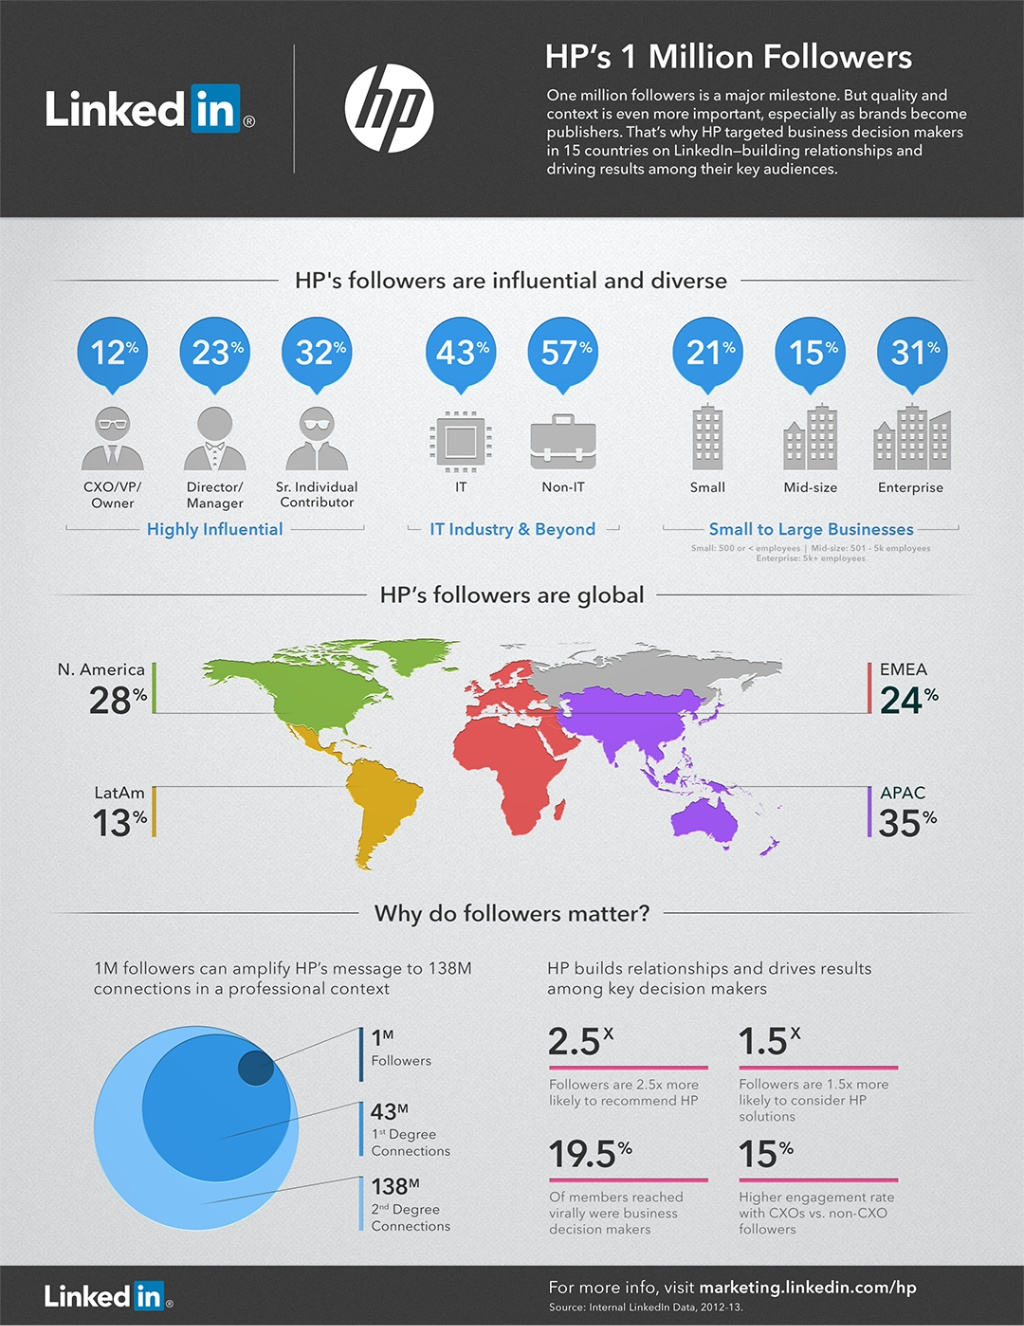 1 million LinkedIn followers for HP